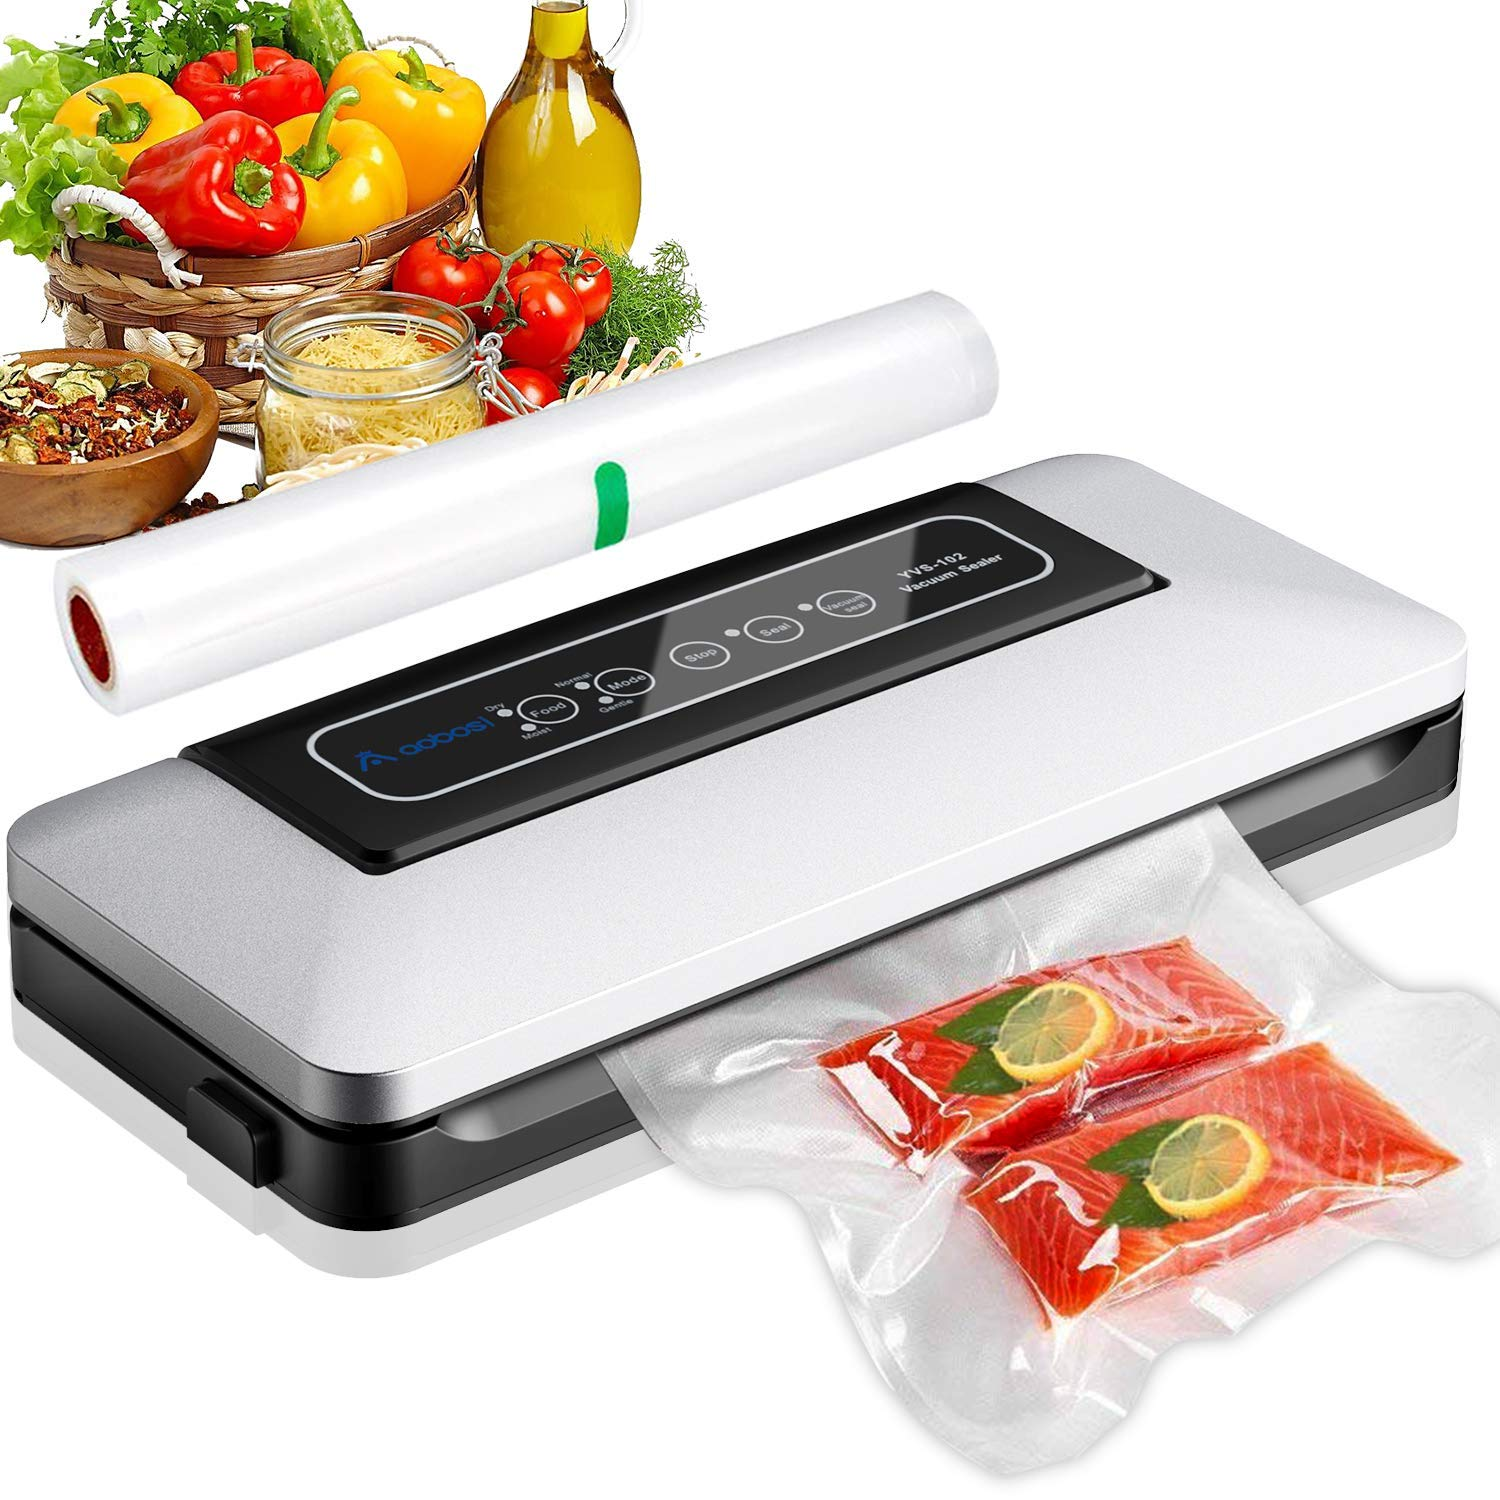 Aobosi Vacuum Sealer Automatic Vacuum Machine with BPA Free Bag Roll for Food Save and Sous Vide Cooking,Super Low Noise,Normal& Gentle Vacuum Modes,Multi-use Vacuum Packing Machine (Vacuum Sealer)